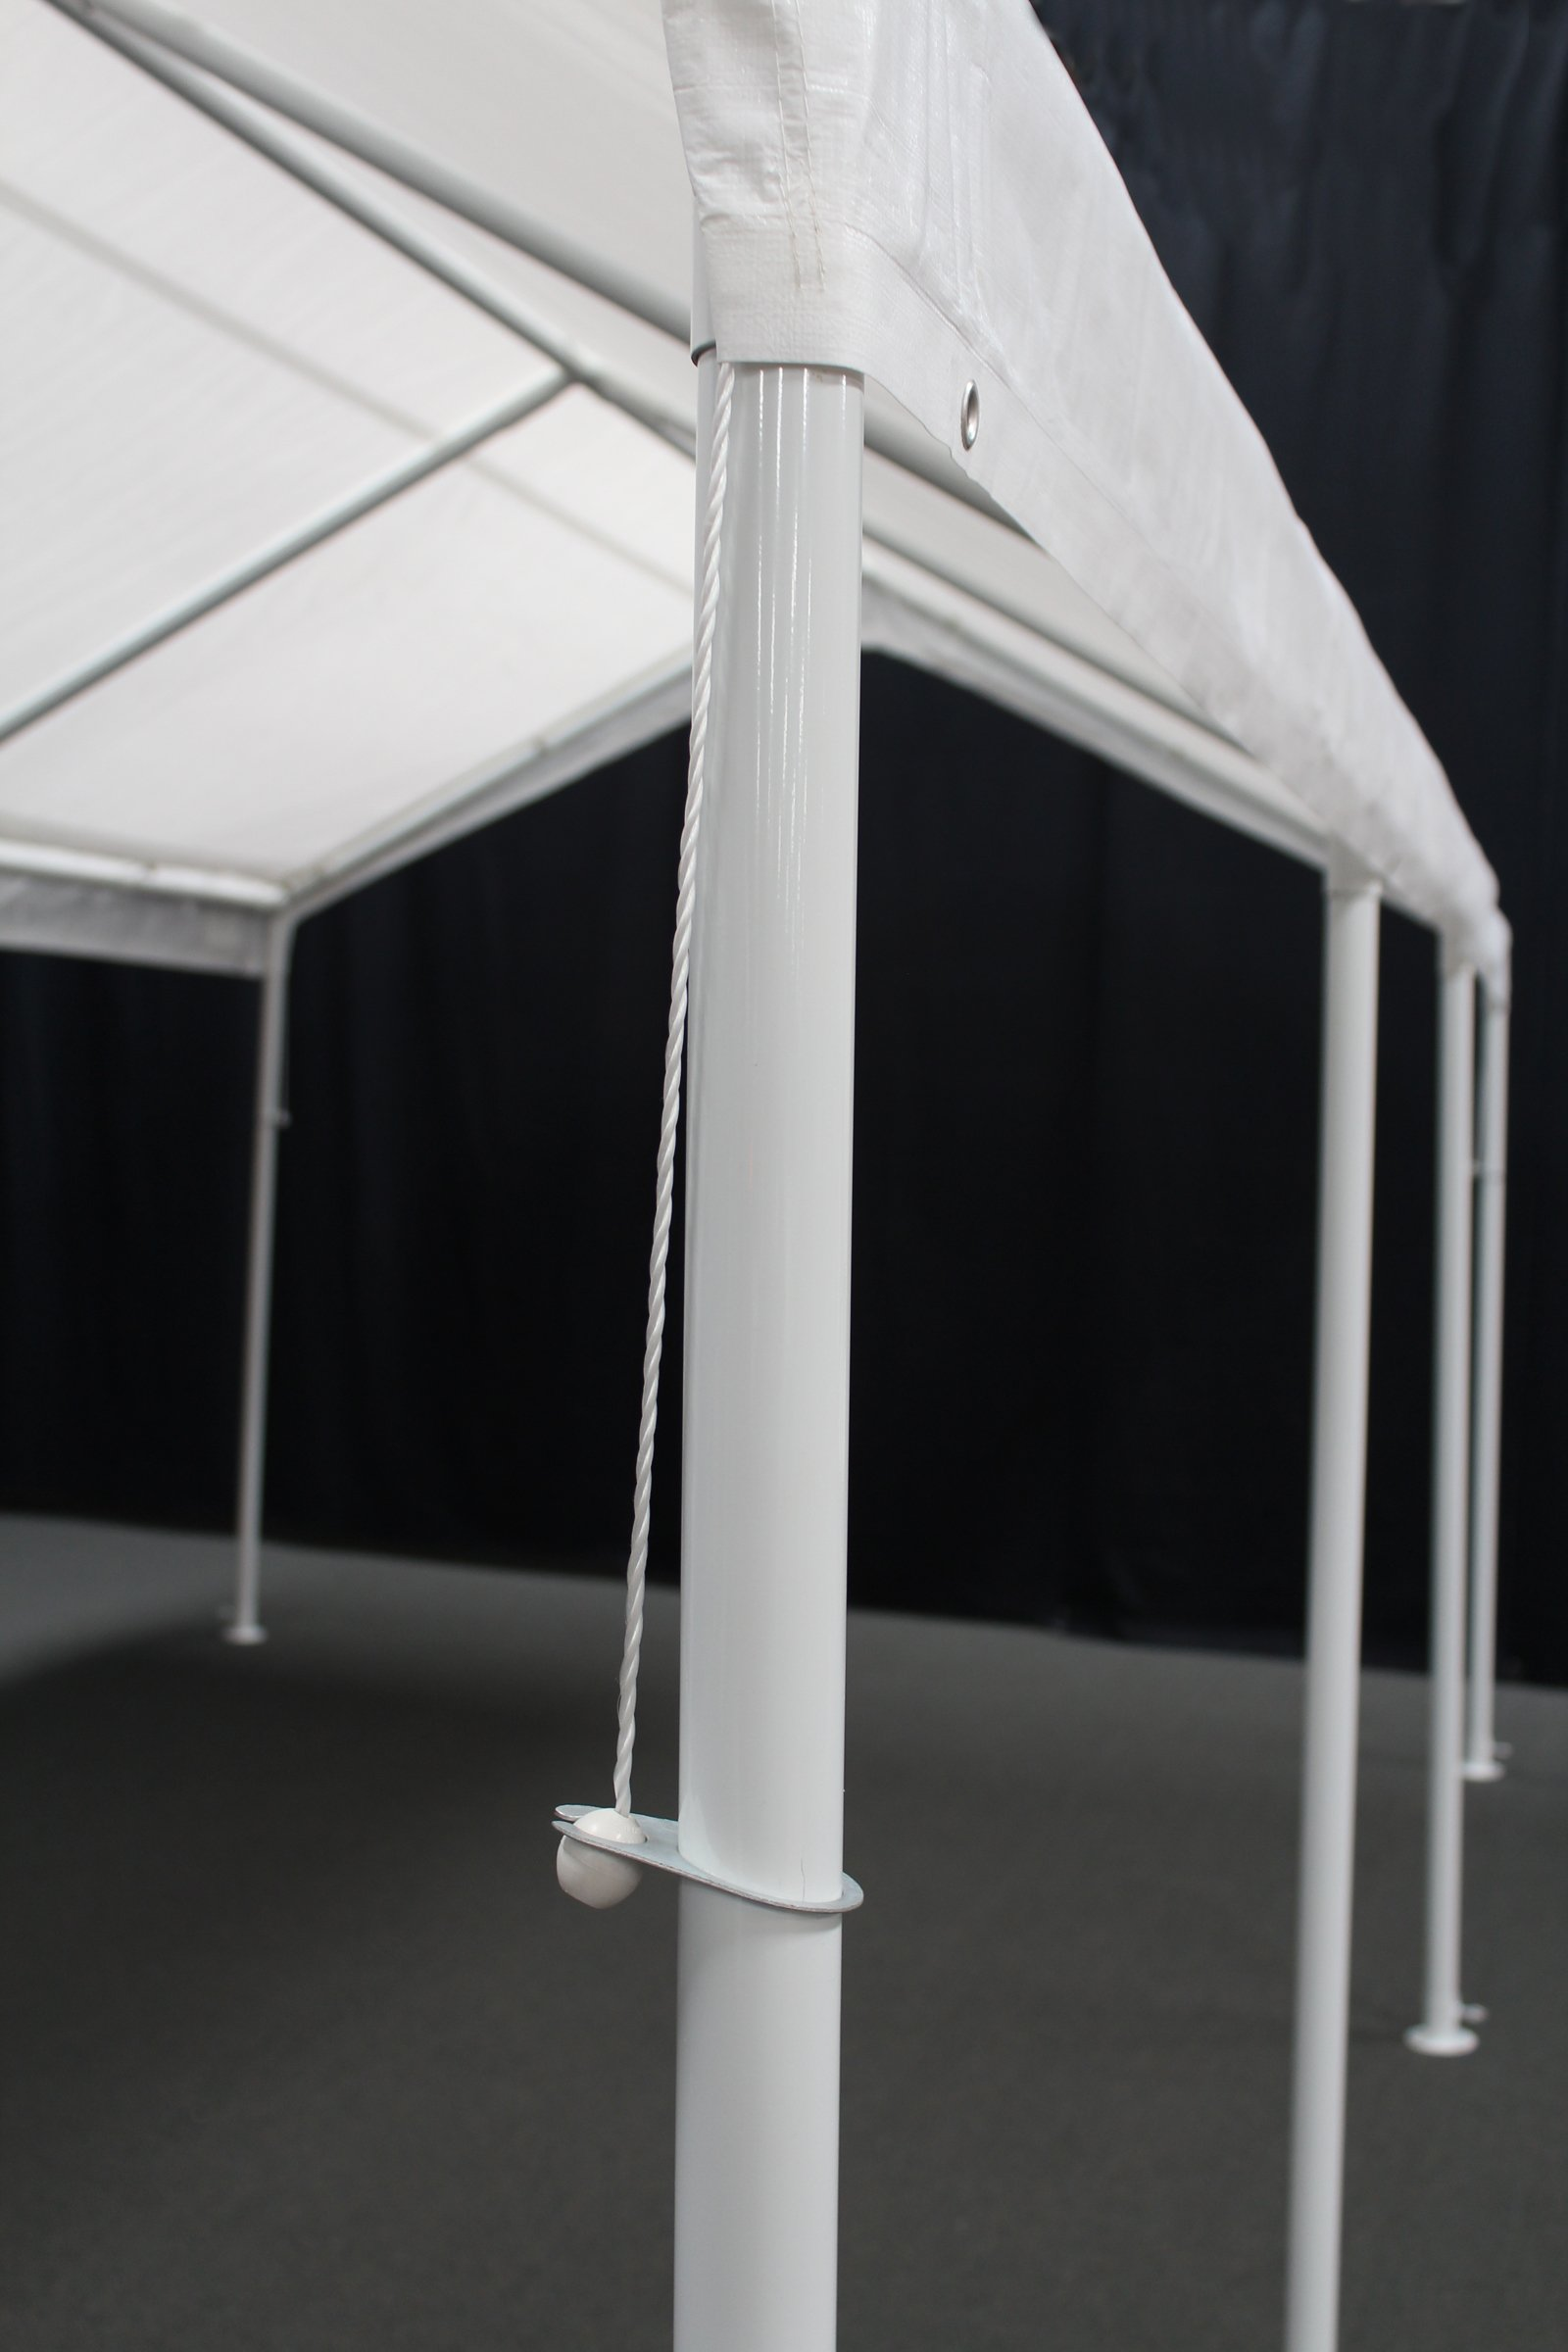 8 Best Carport Kits of 2019 Reviewed | Homesthetics